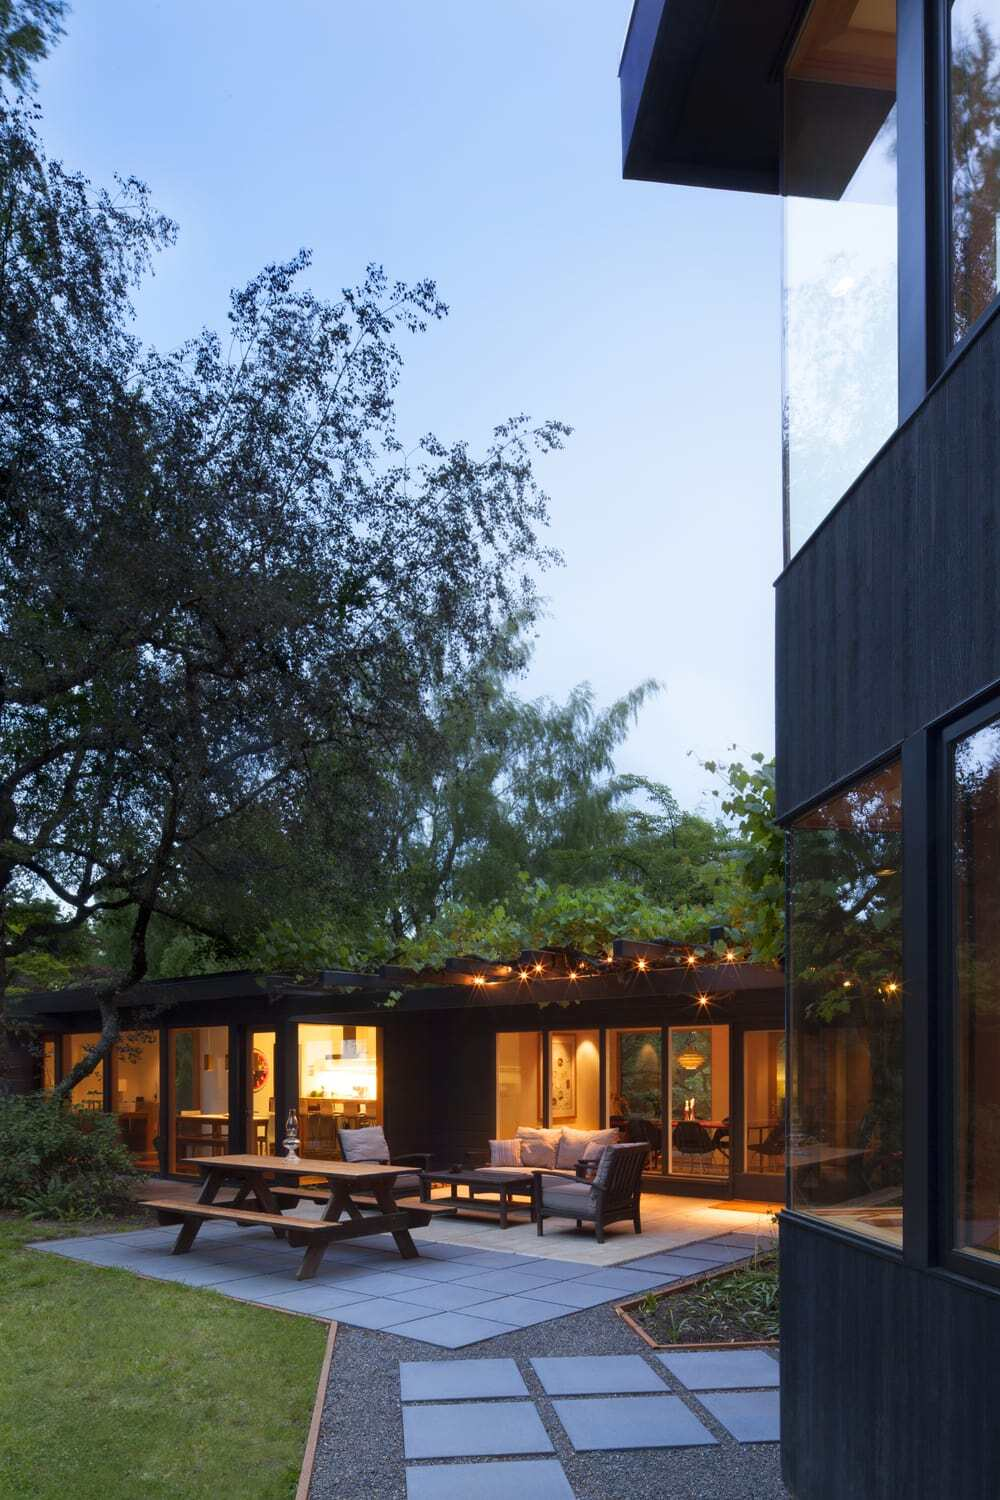 Meschter Residence by Skylab Architecture